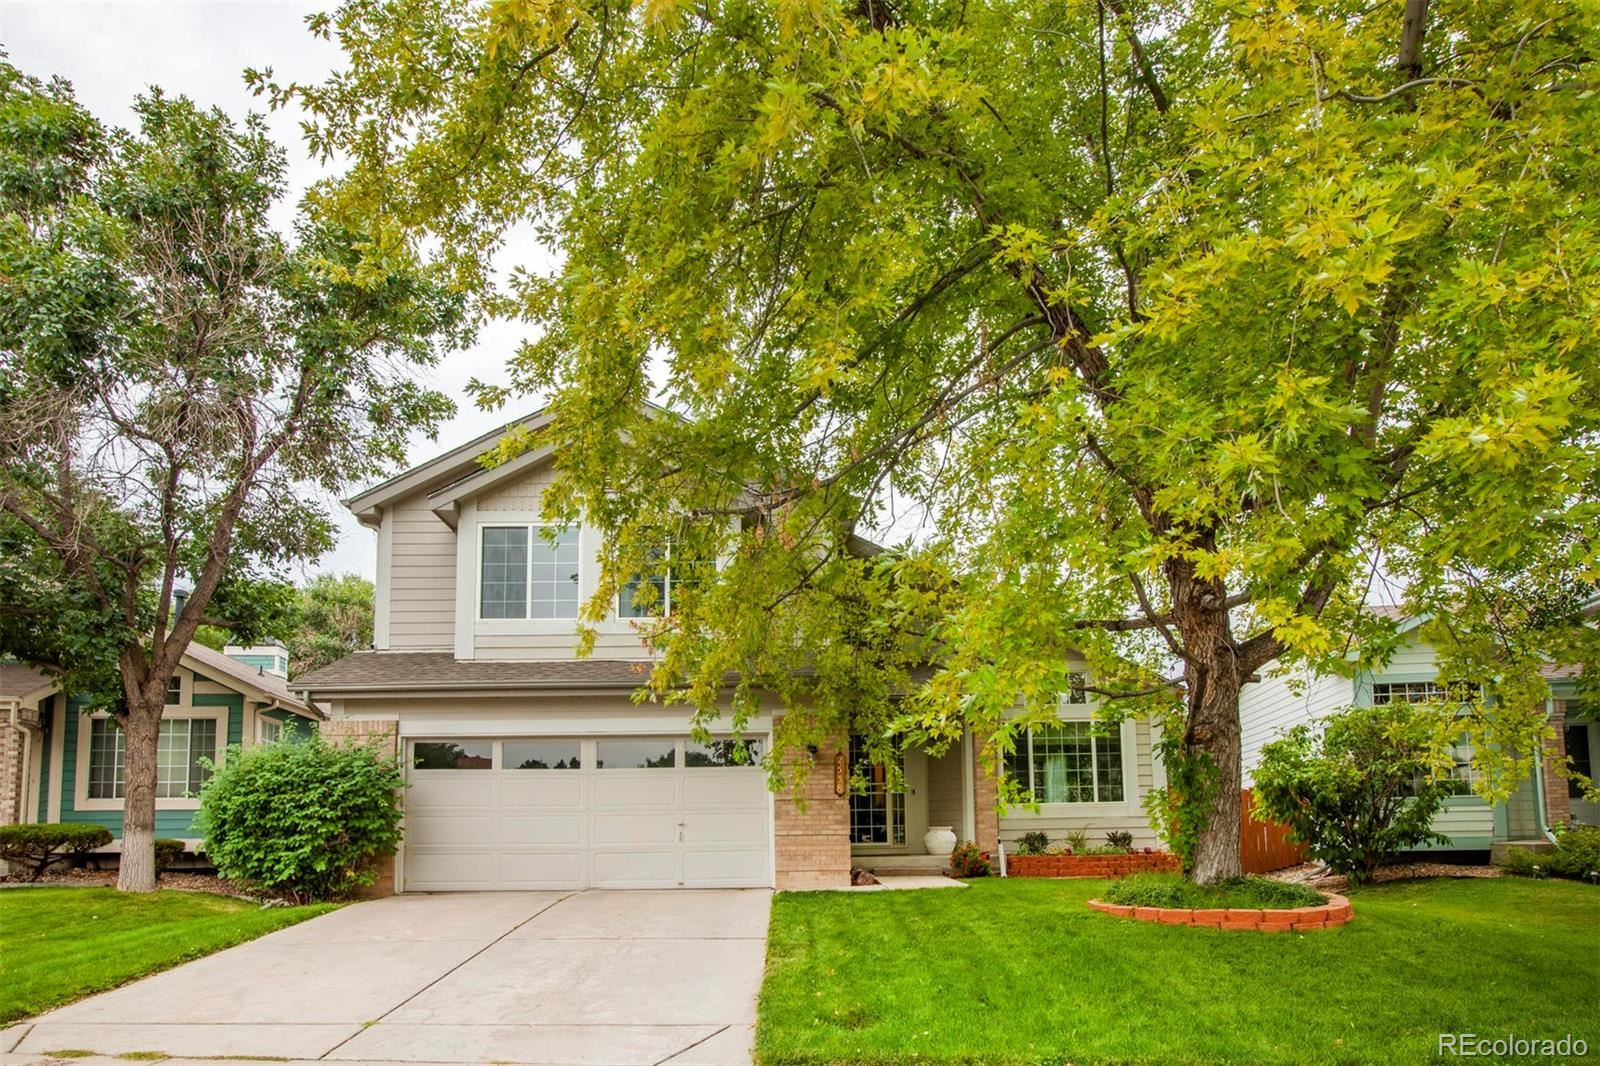 2538 W 110th Avenue, Westminster, CO 80234 - #: 9009590